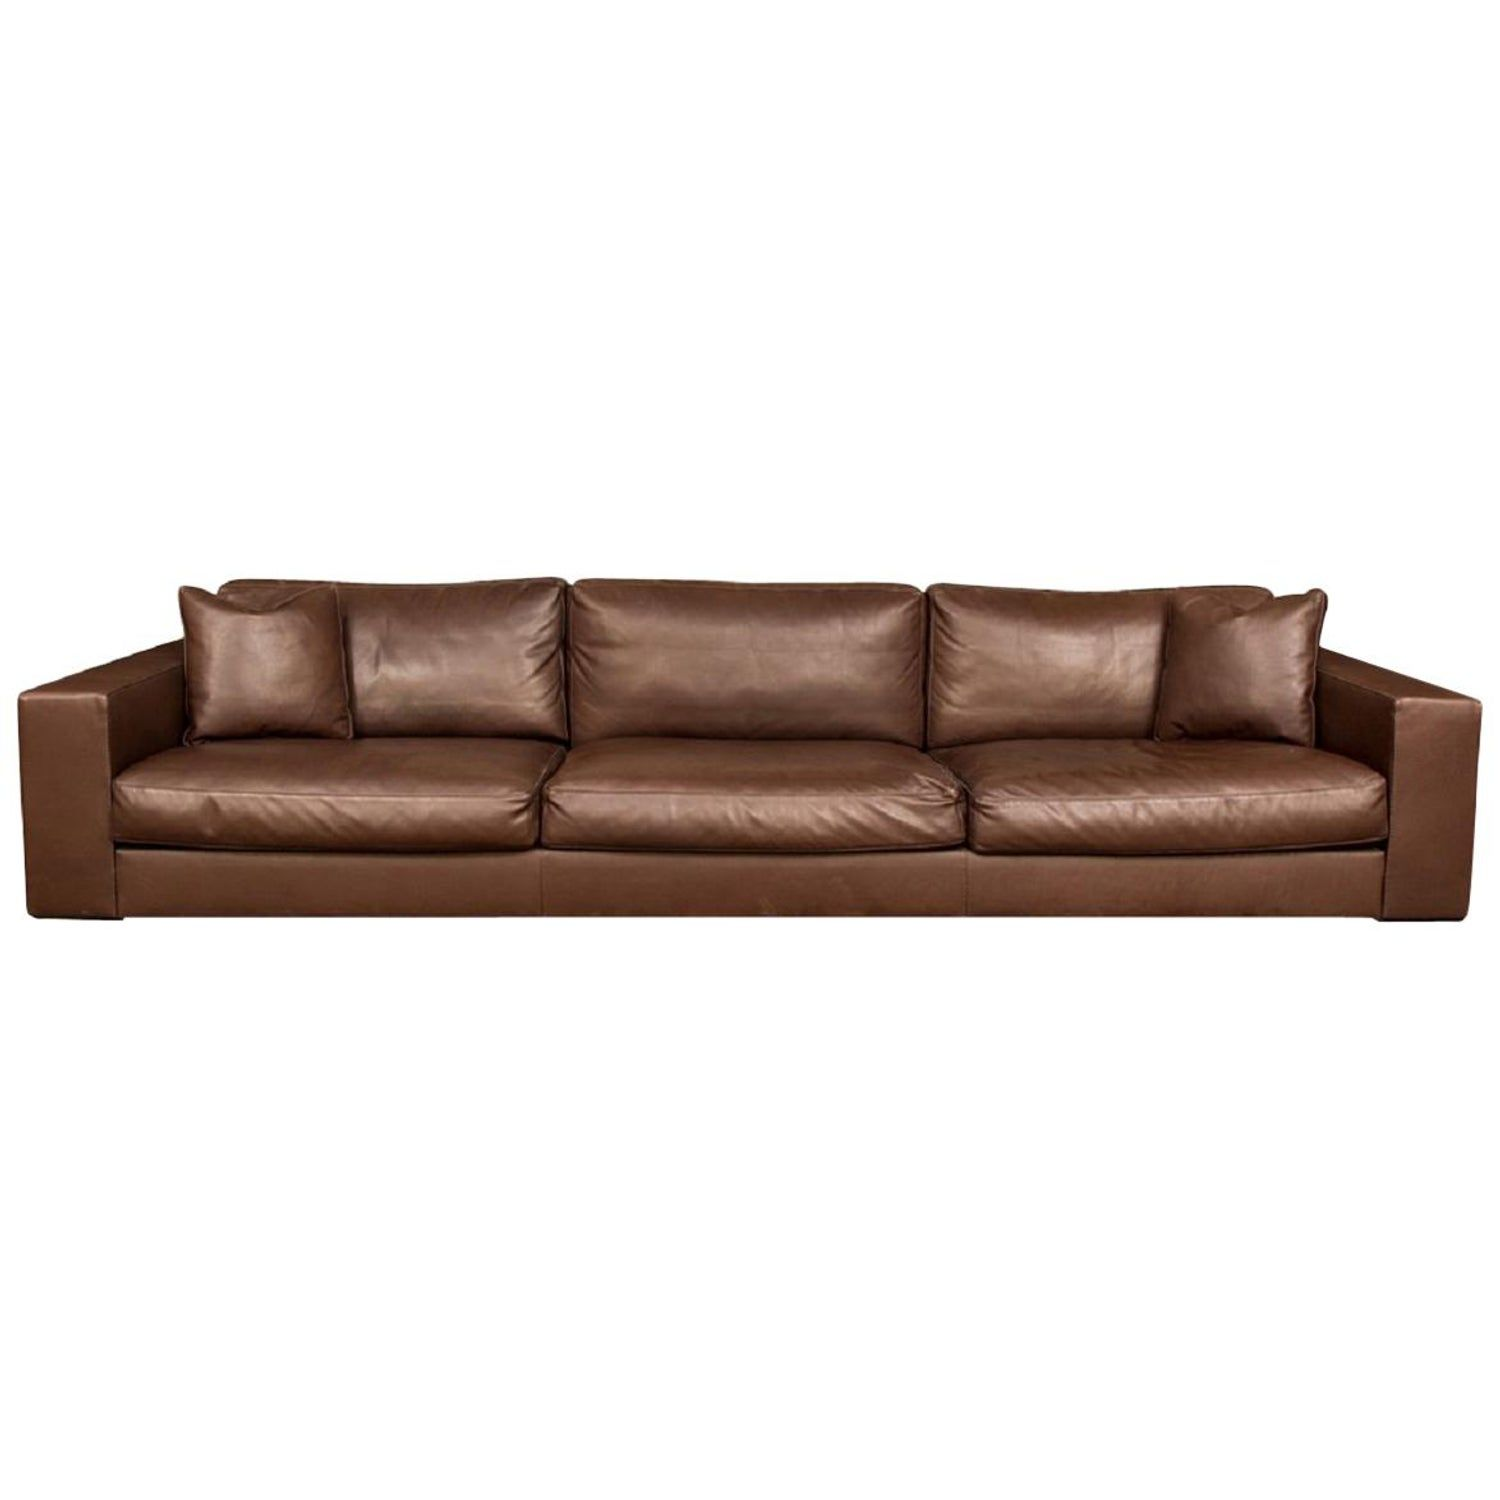 Fine Quality Brown Leather Sofa By Rivolta Italy Brown Leather Sofa Leather Sofa Brown Leather Ottoman